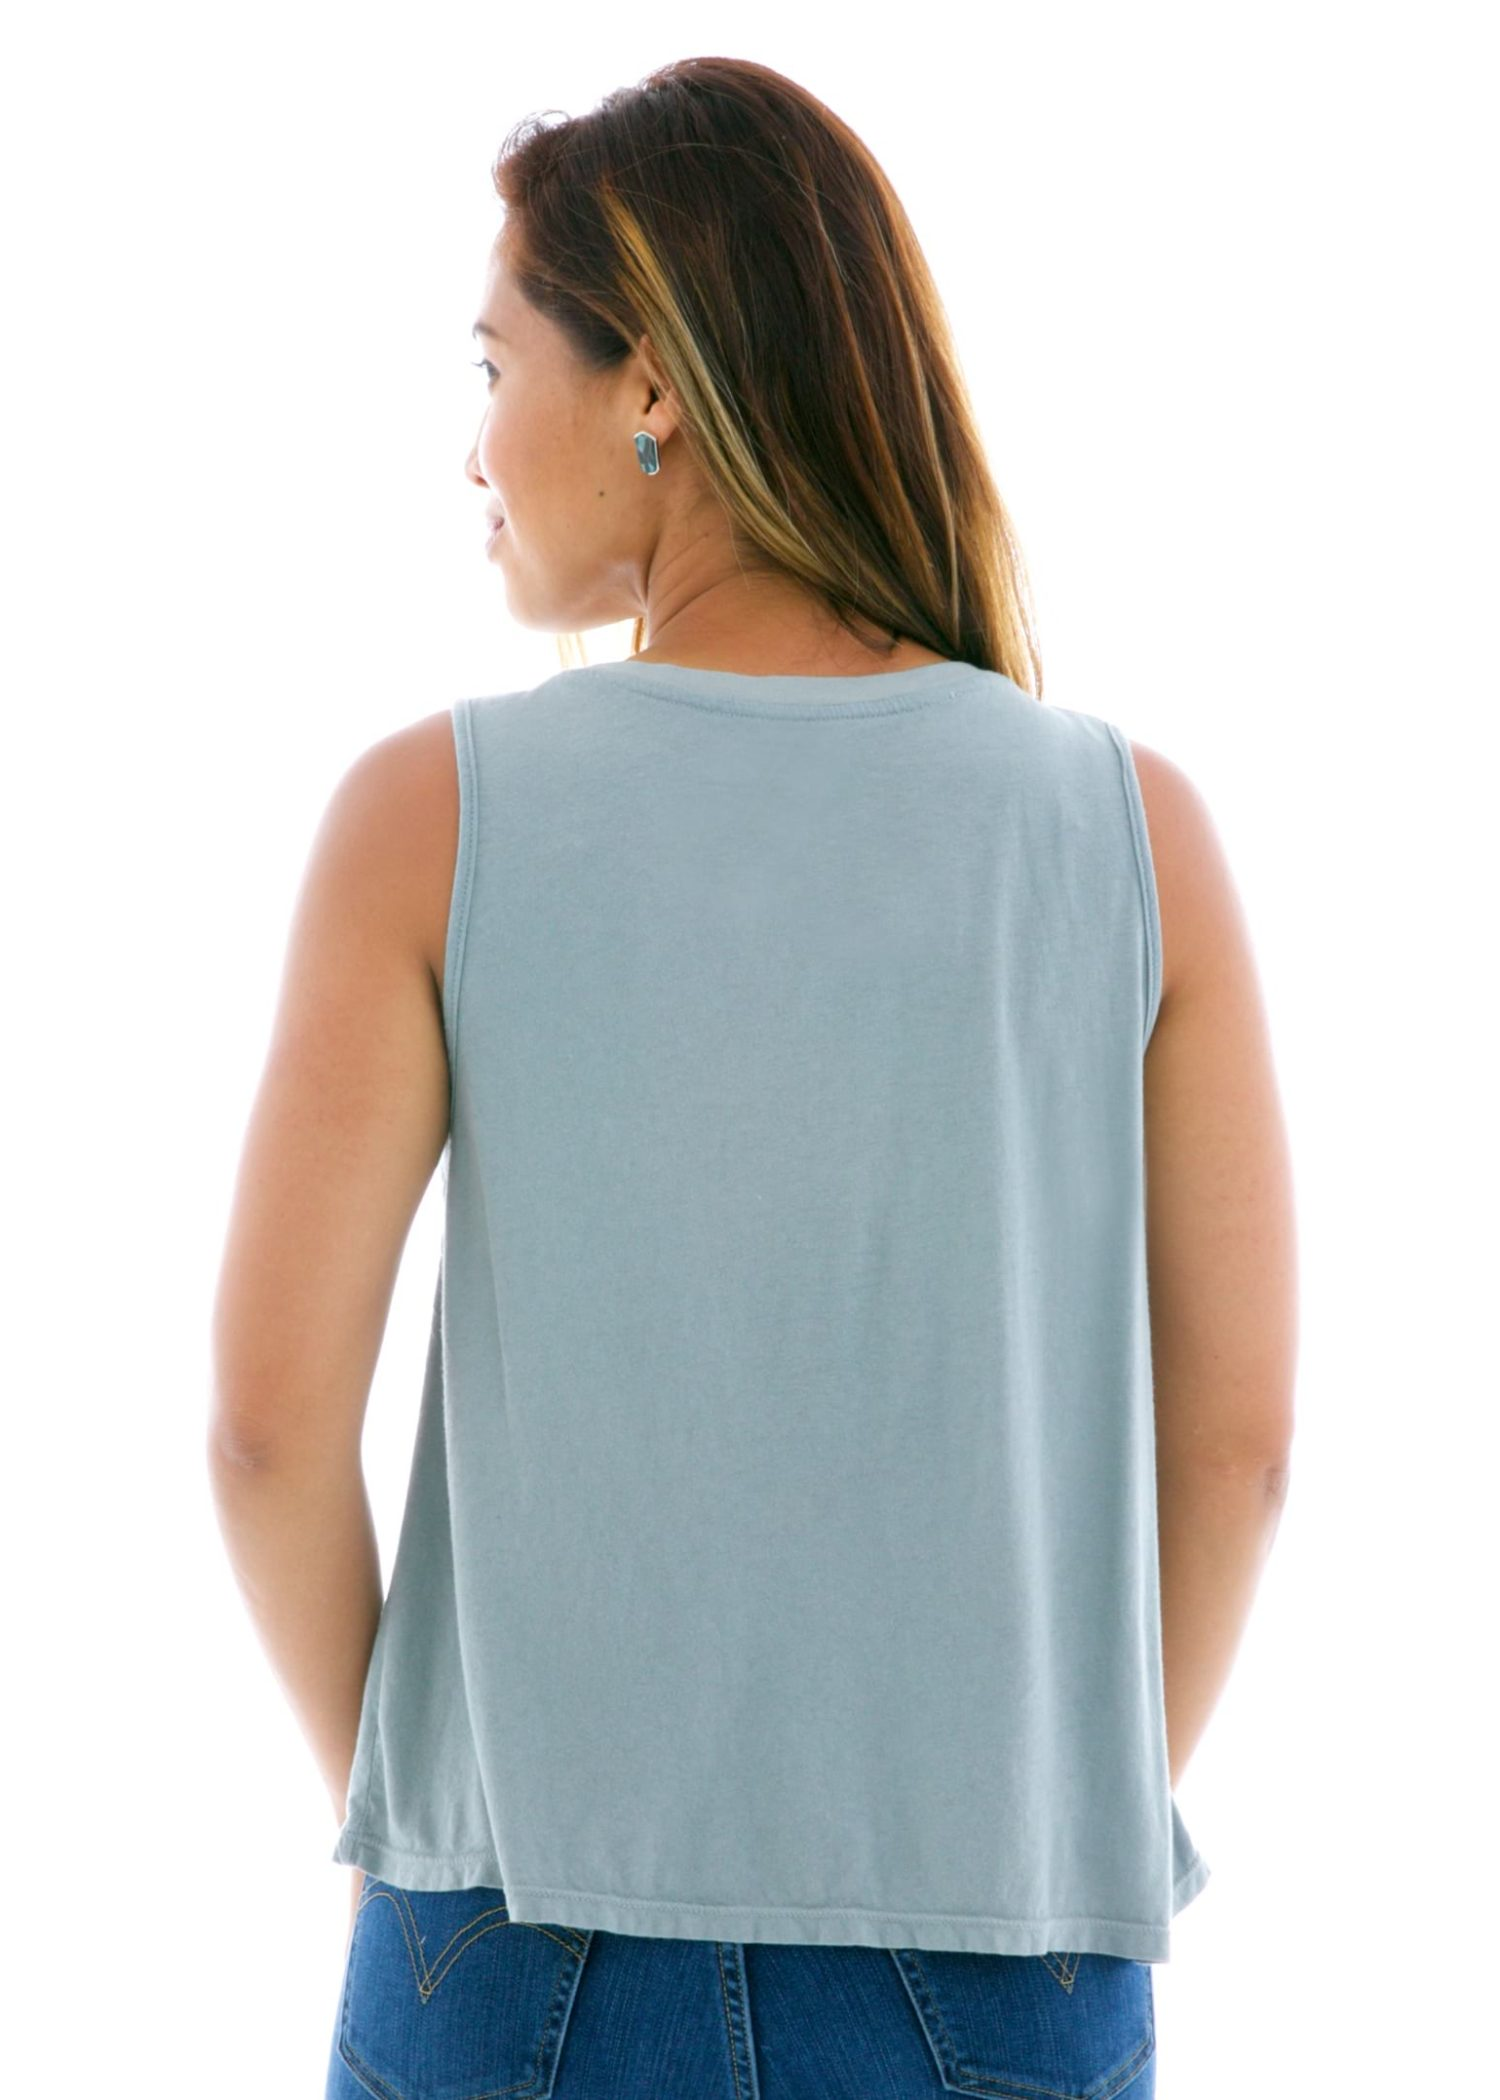 Cropped Muscle Tank Top Back View